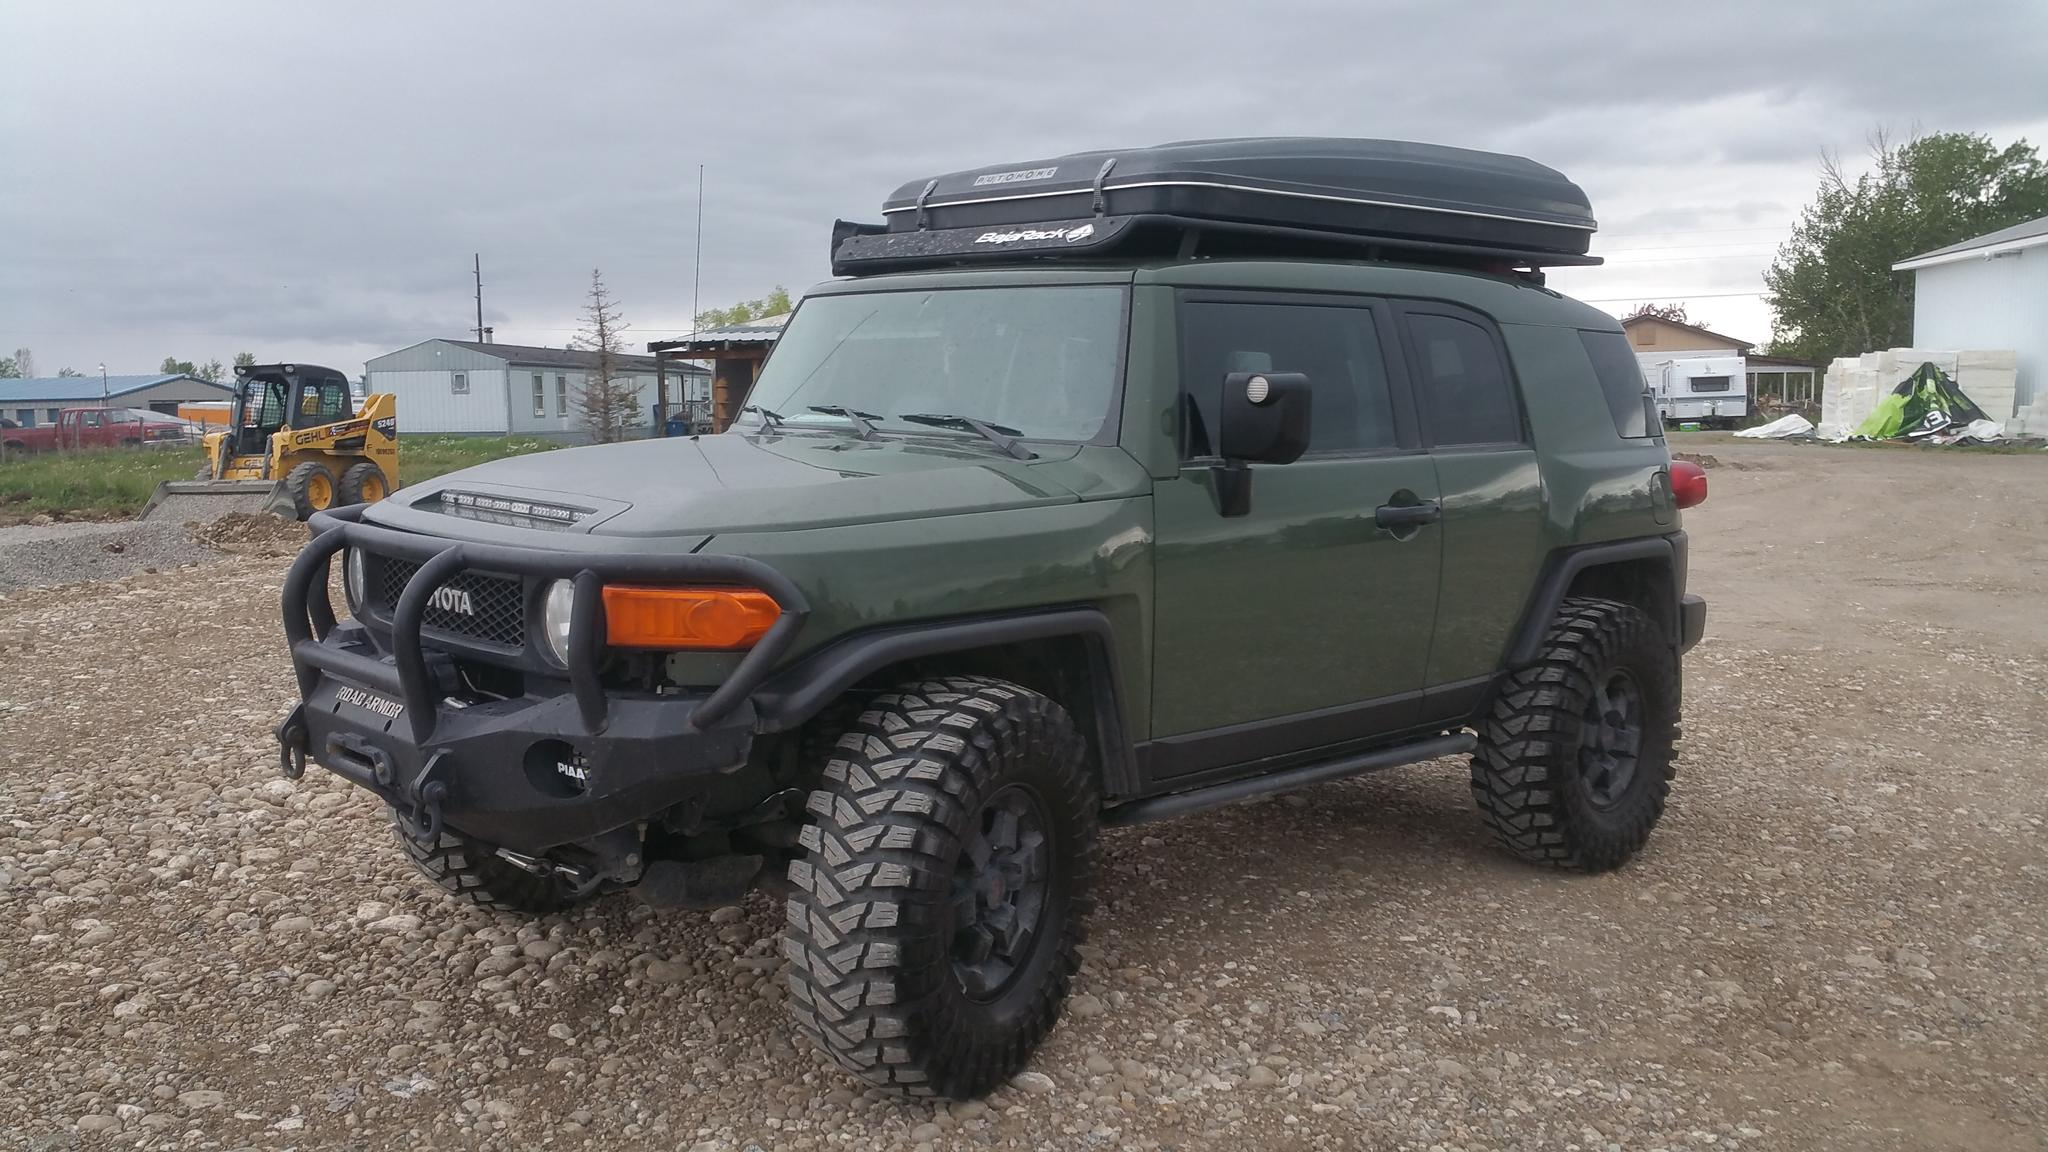 Fj 2011 Trail Teams Overlanding Edtion Sold Toyota